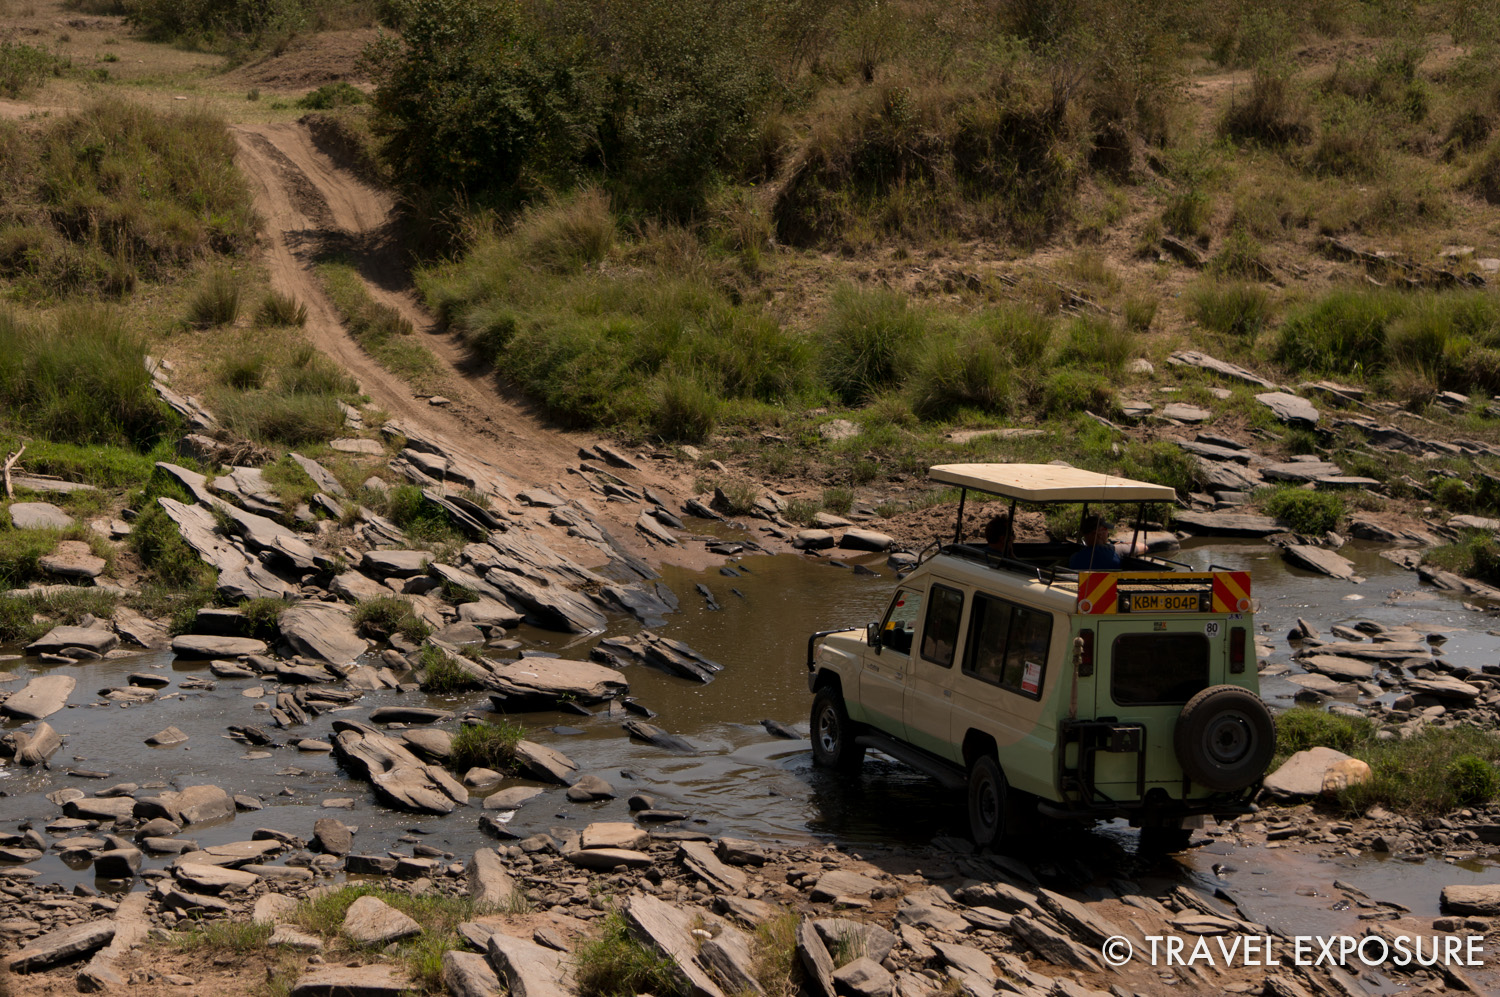 We were riding around in a car like this on the game drive.